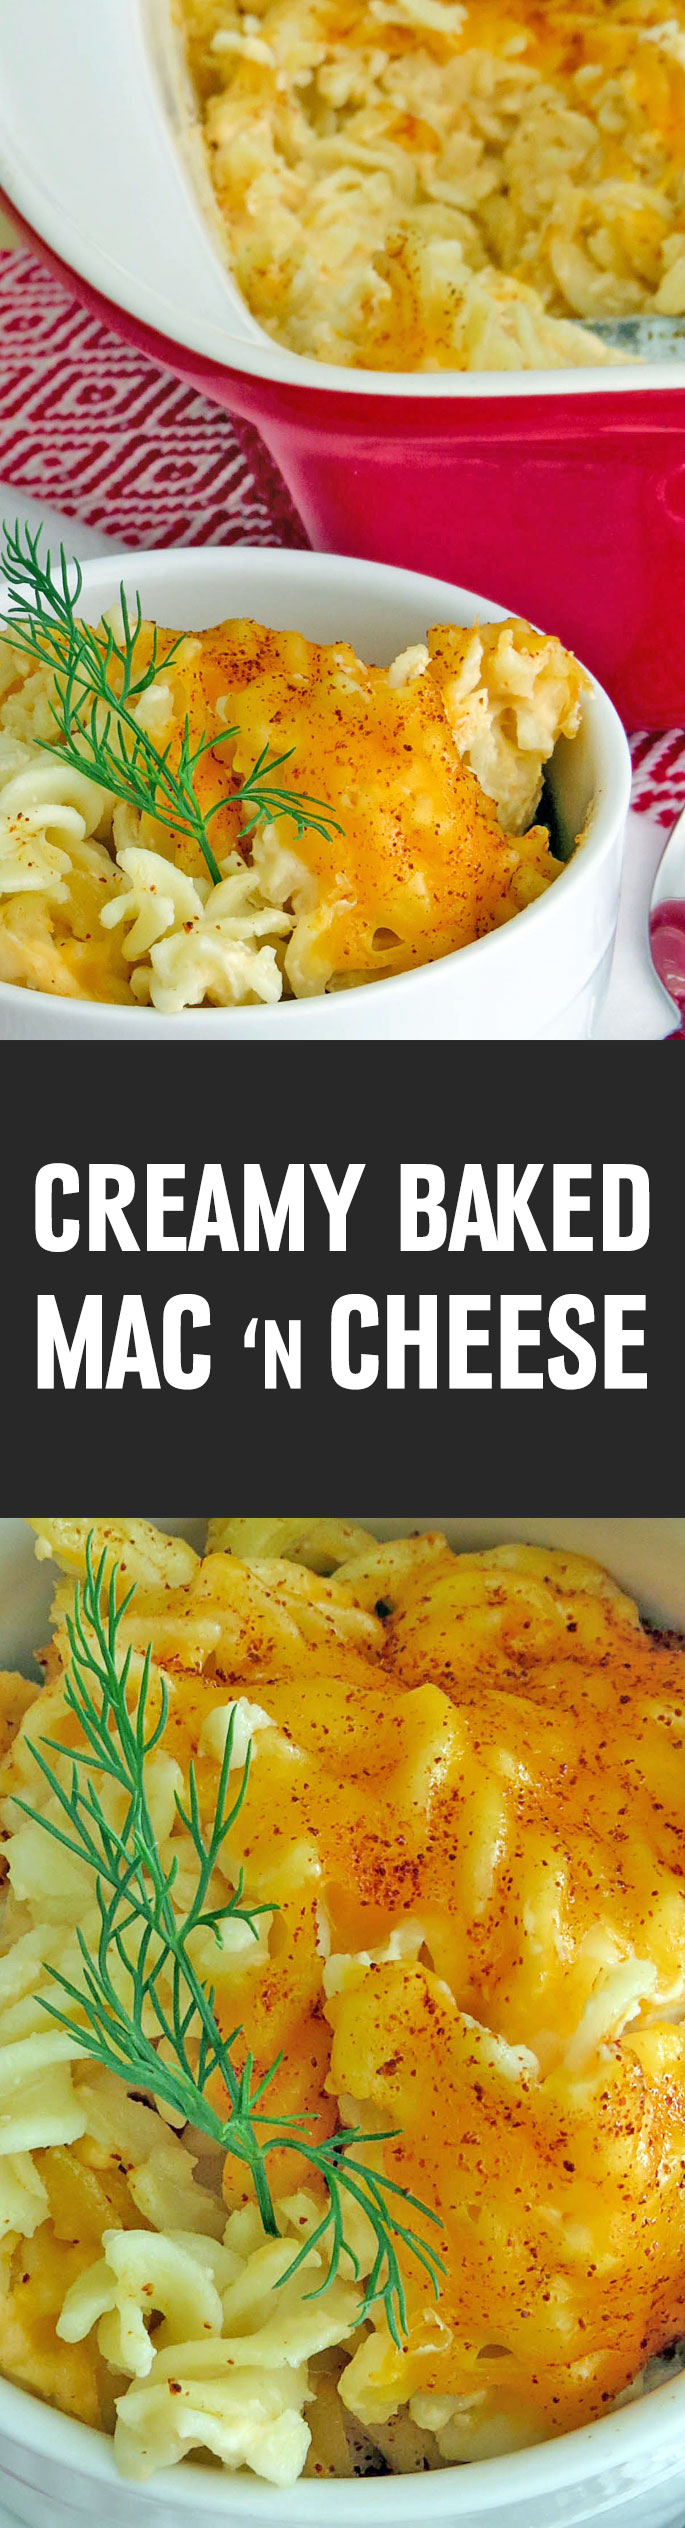 Skip the hours over the stove top stirring a creamy cheese sauce. Try out this ultra-creamy cheesy pasta dish that serves a crowd, or leaves you with delicious leftovers for another meal! Shared via http://www.gluteninsight.com